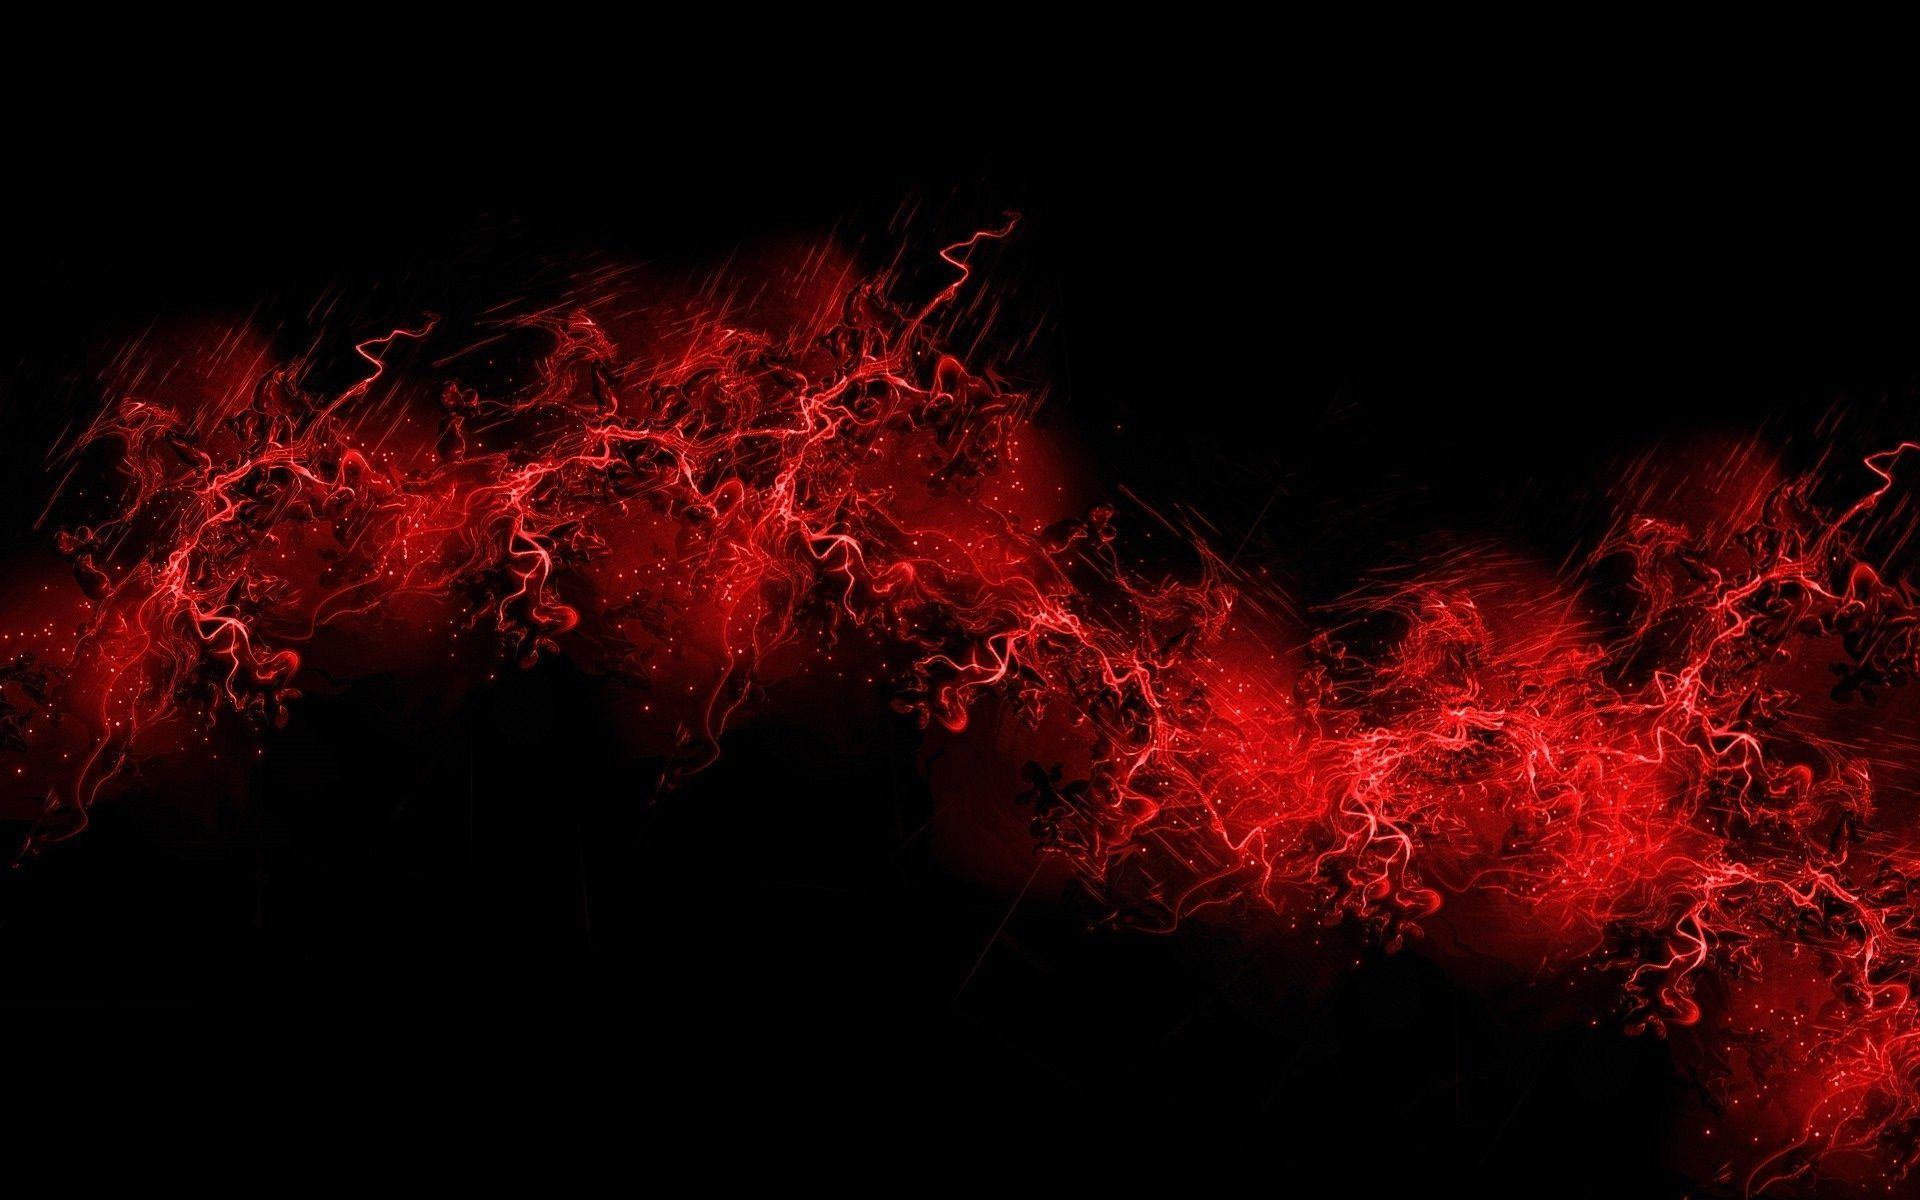 Wallpapers For > Black And Red Tumblr Backgrounds